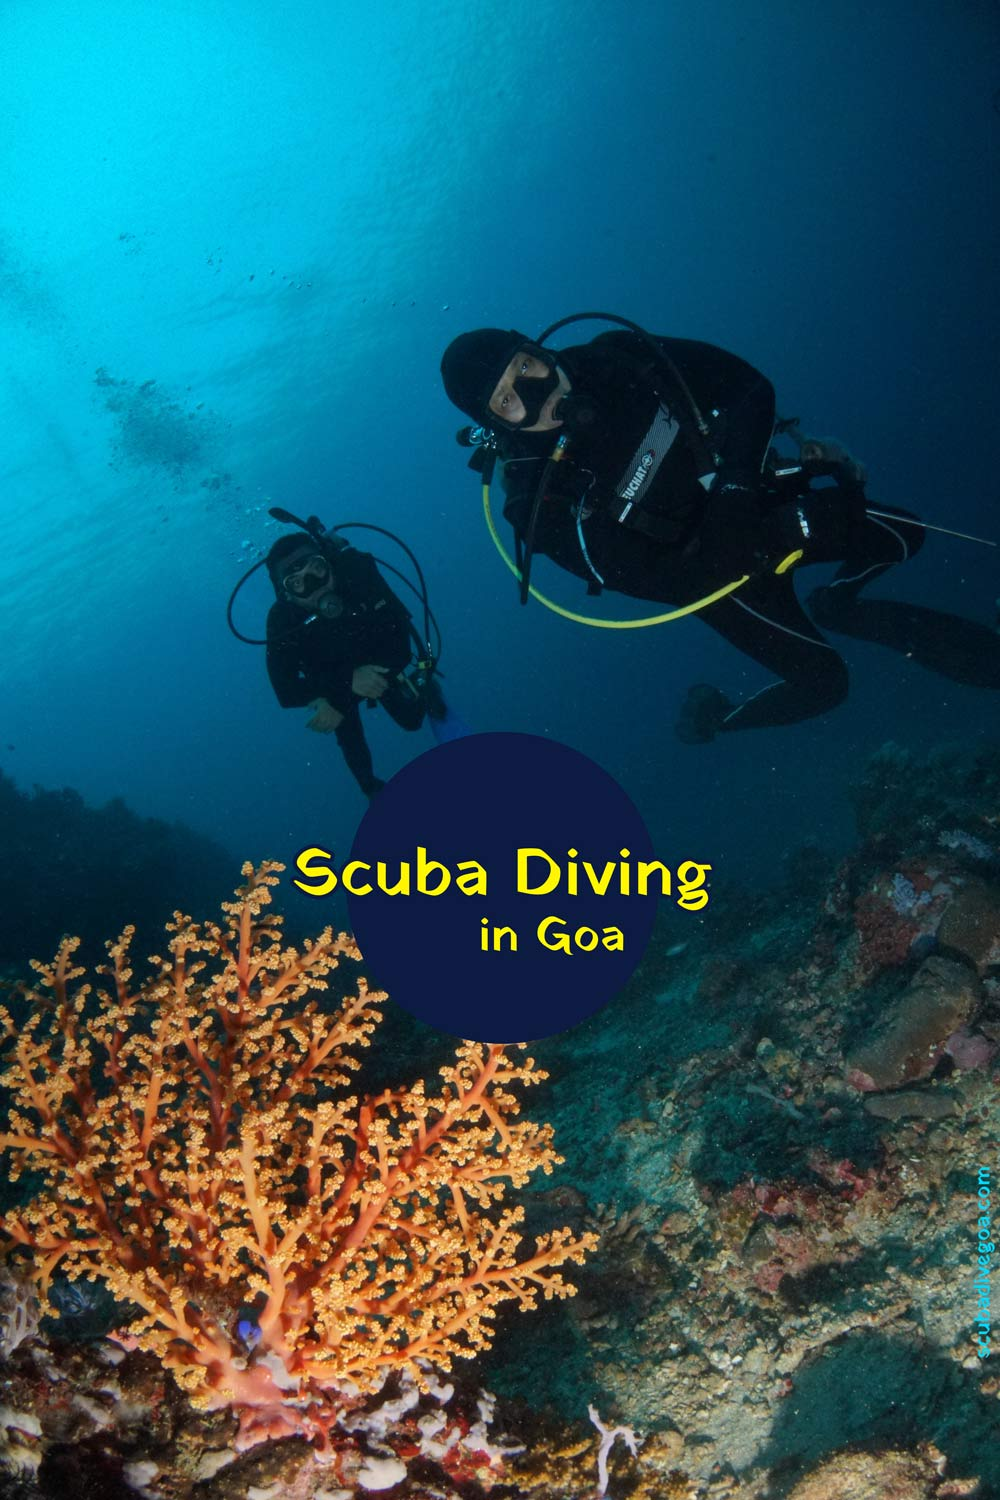 Experience Scuba Diving at Grand Island in Goa 7